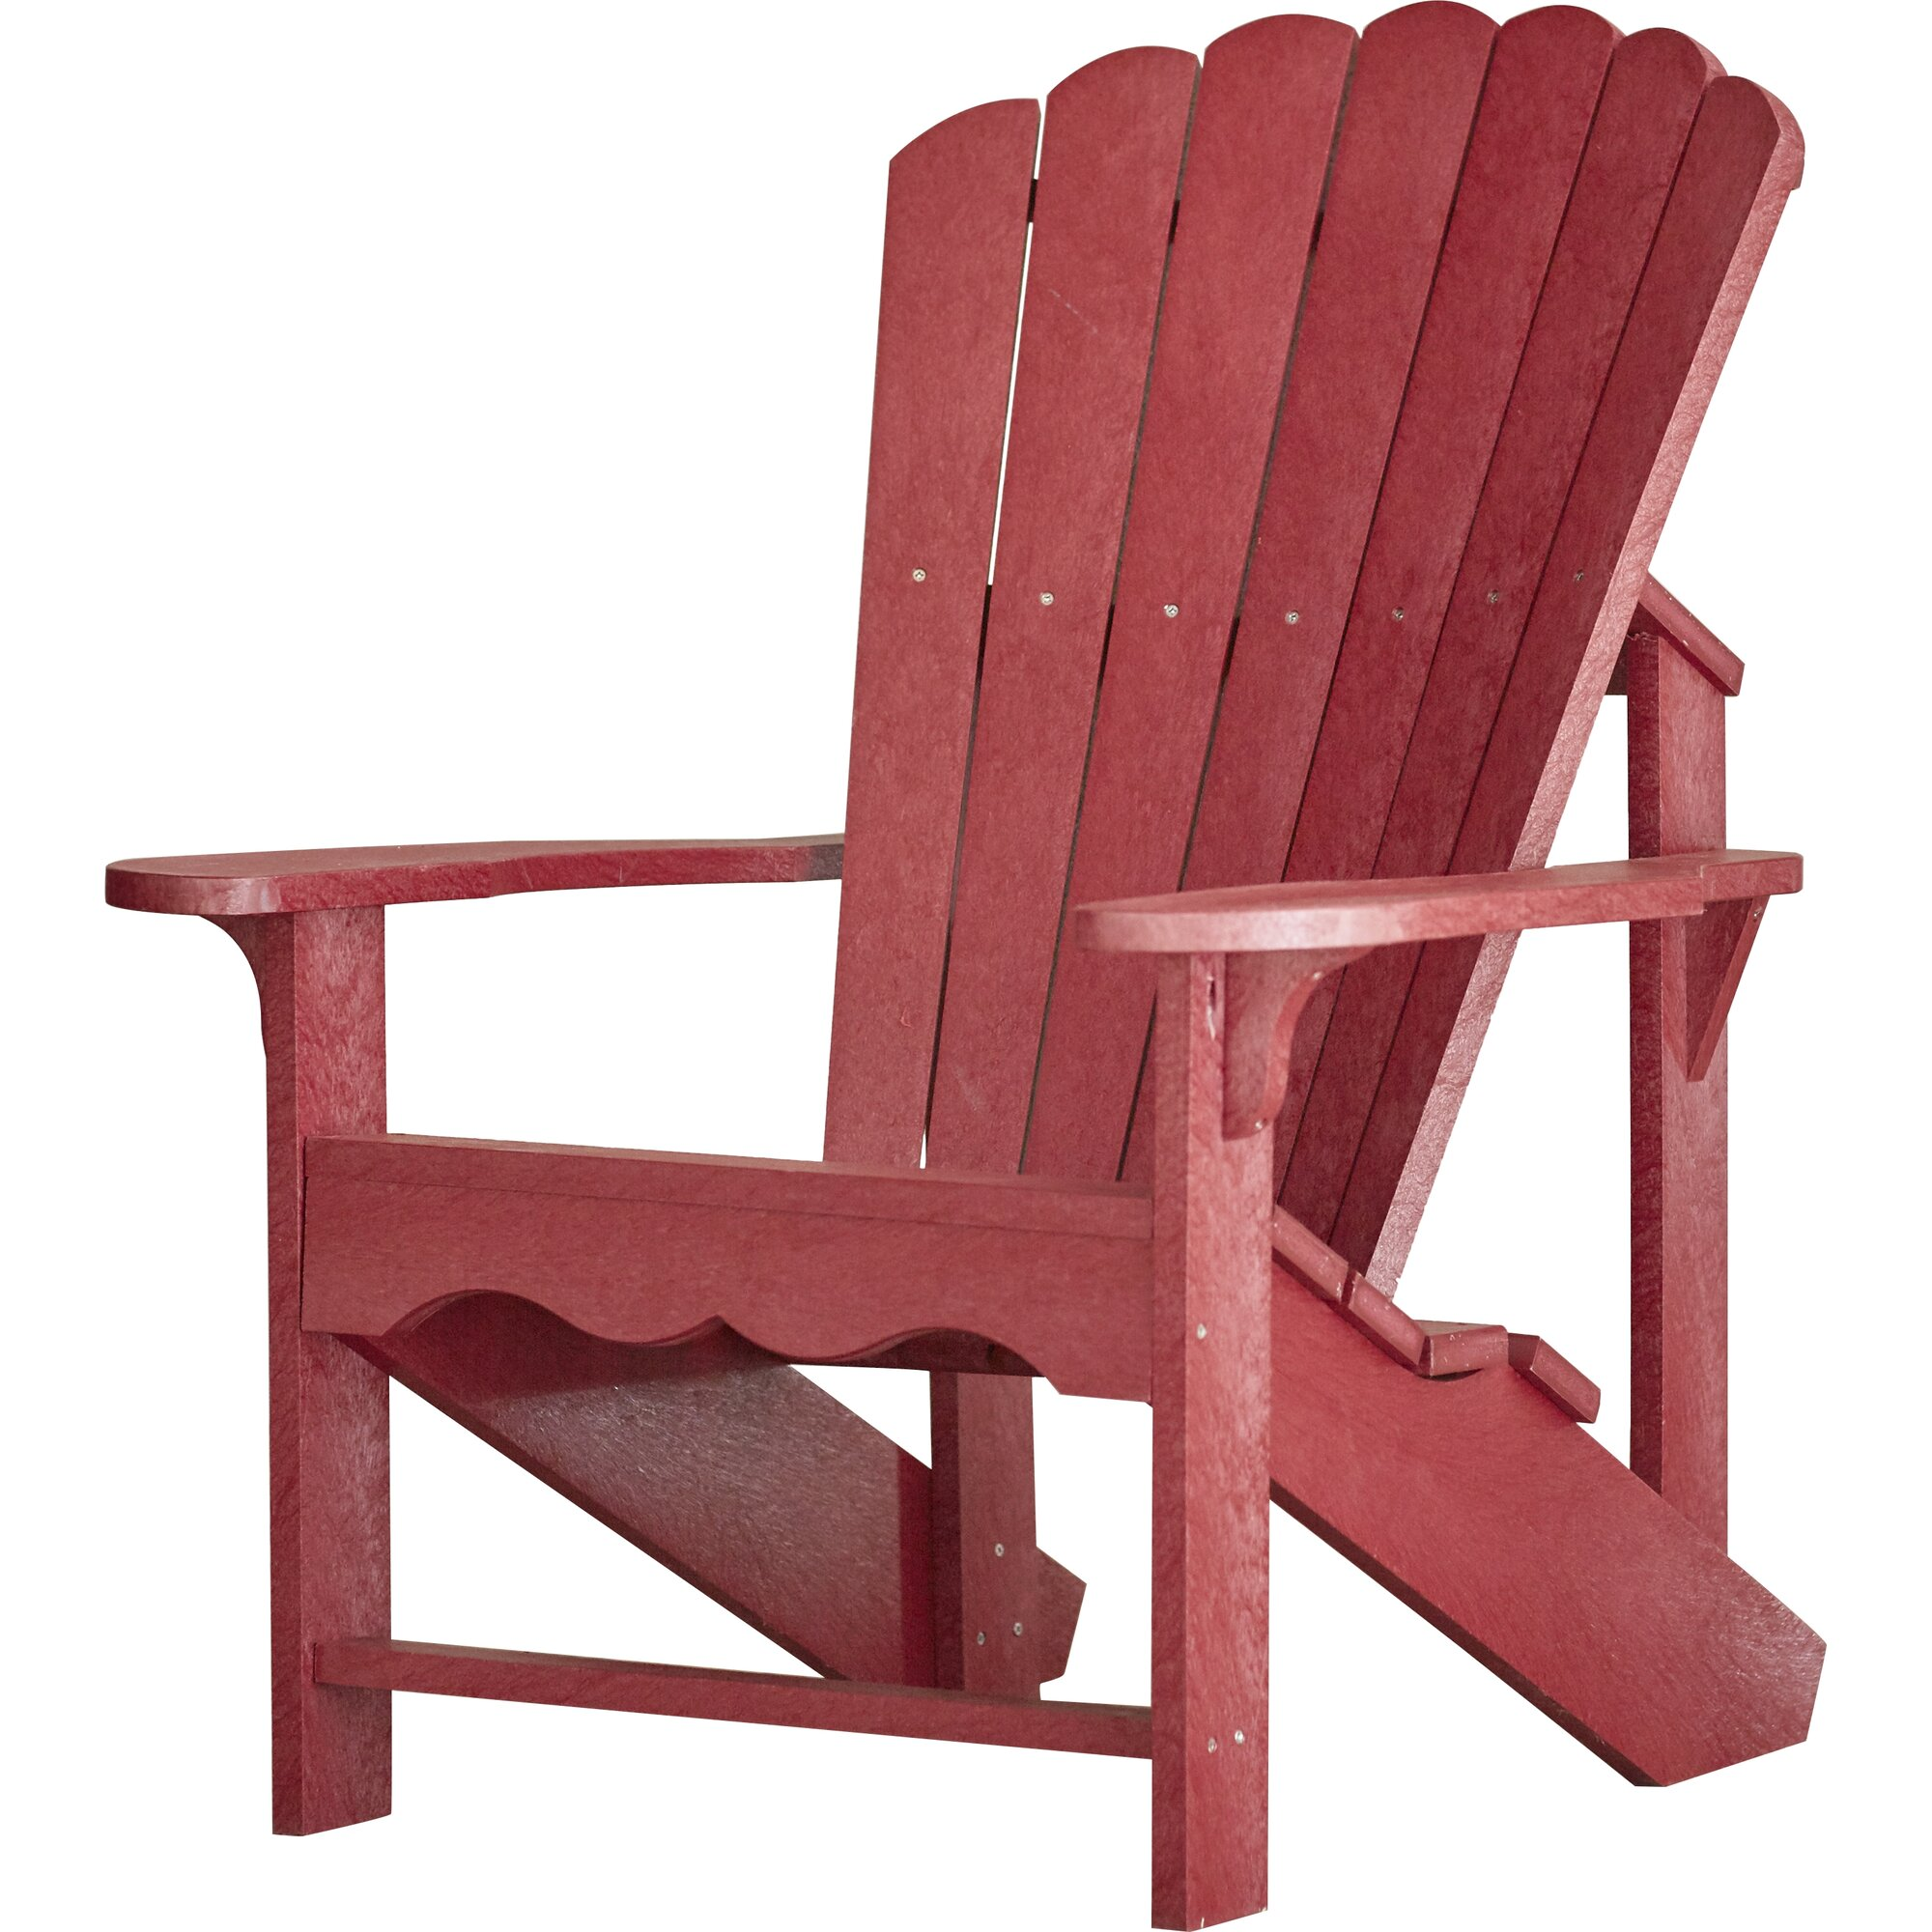 bay isle home aloa adirondack chair reviews wayfair. Black Bedroom Furniture Sets. Home Design Ideas